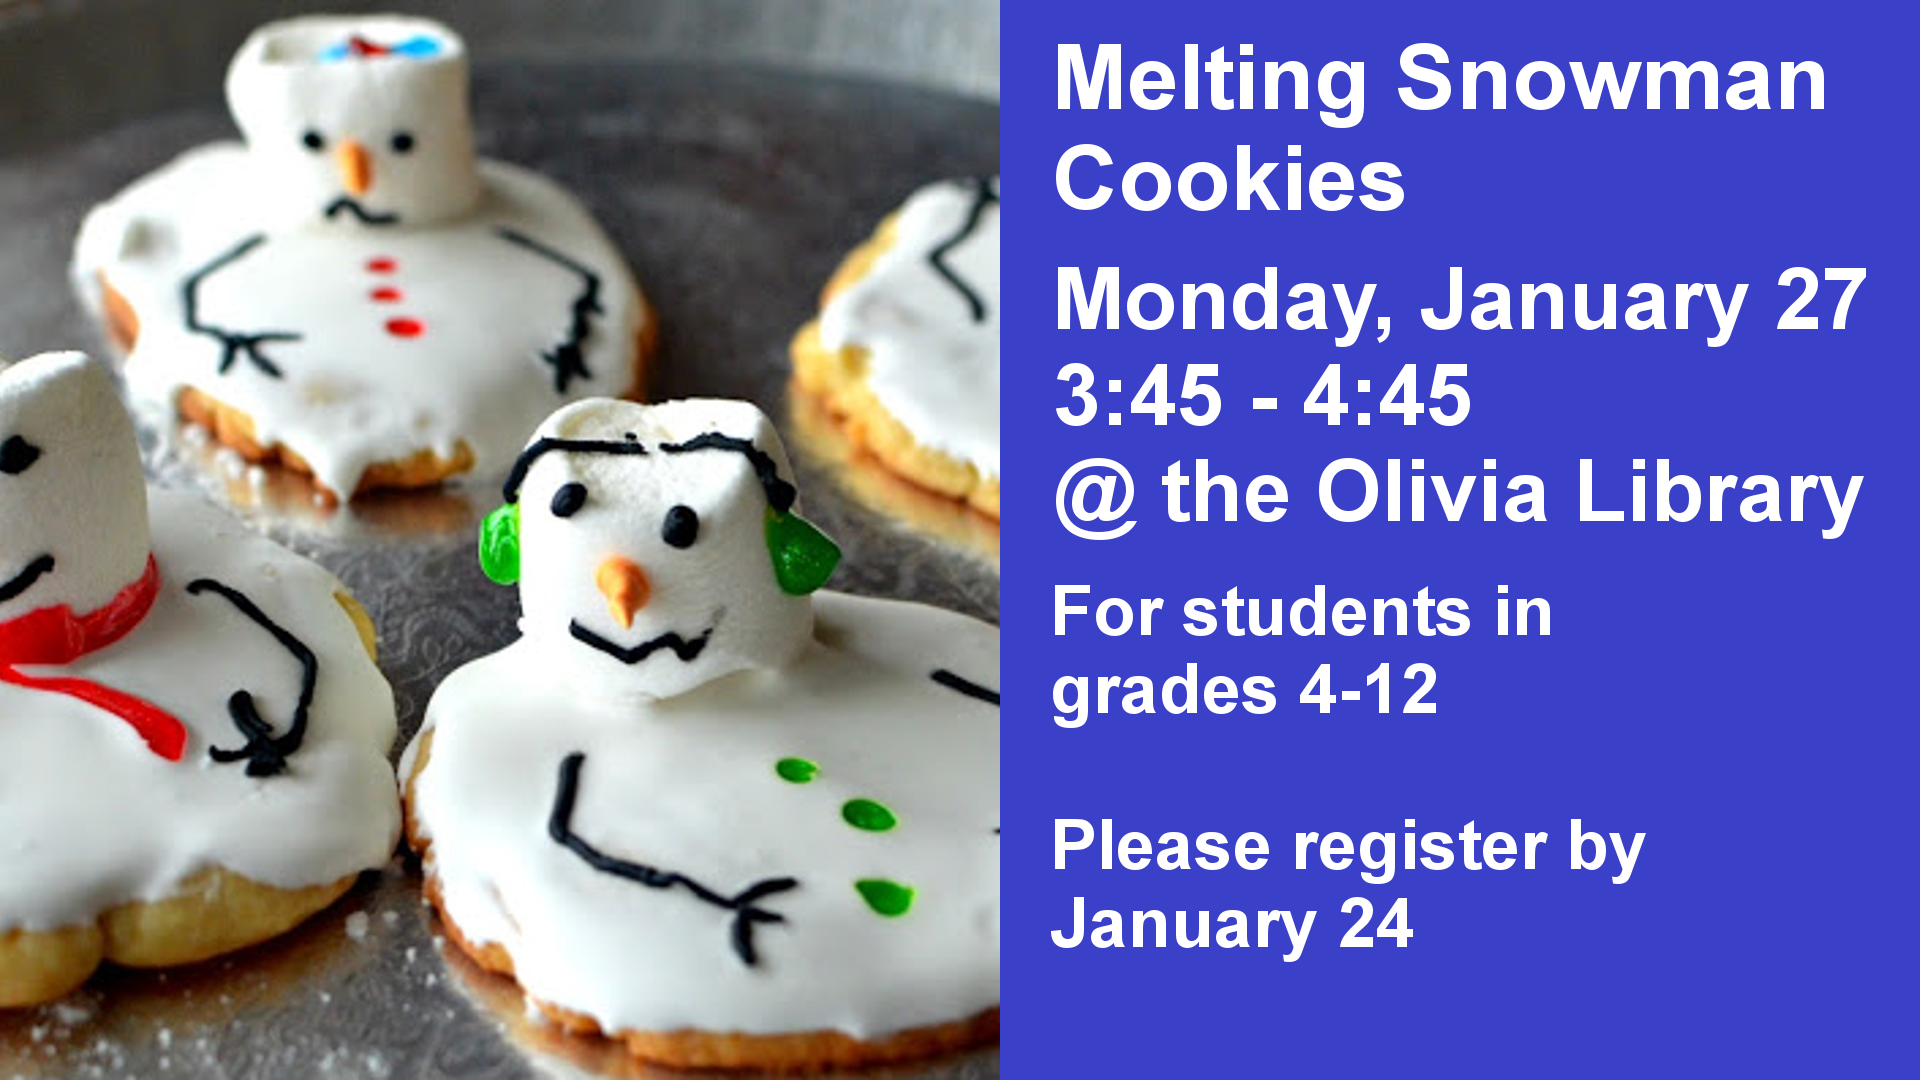 Melting Snowman Cookies Monday, January 27 3:45 - 4:45 @ the Olivia Library For students in  grades 4-12  Please register by January 24